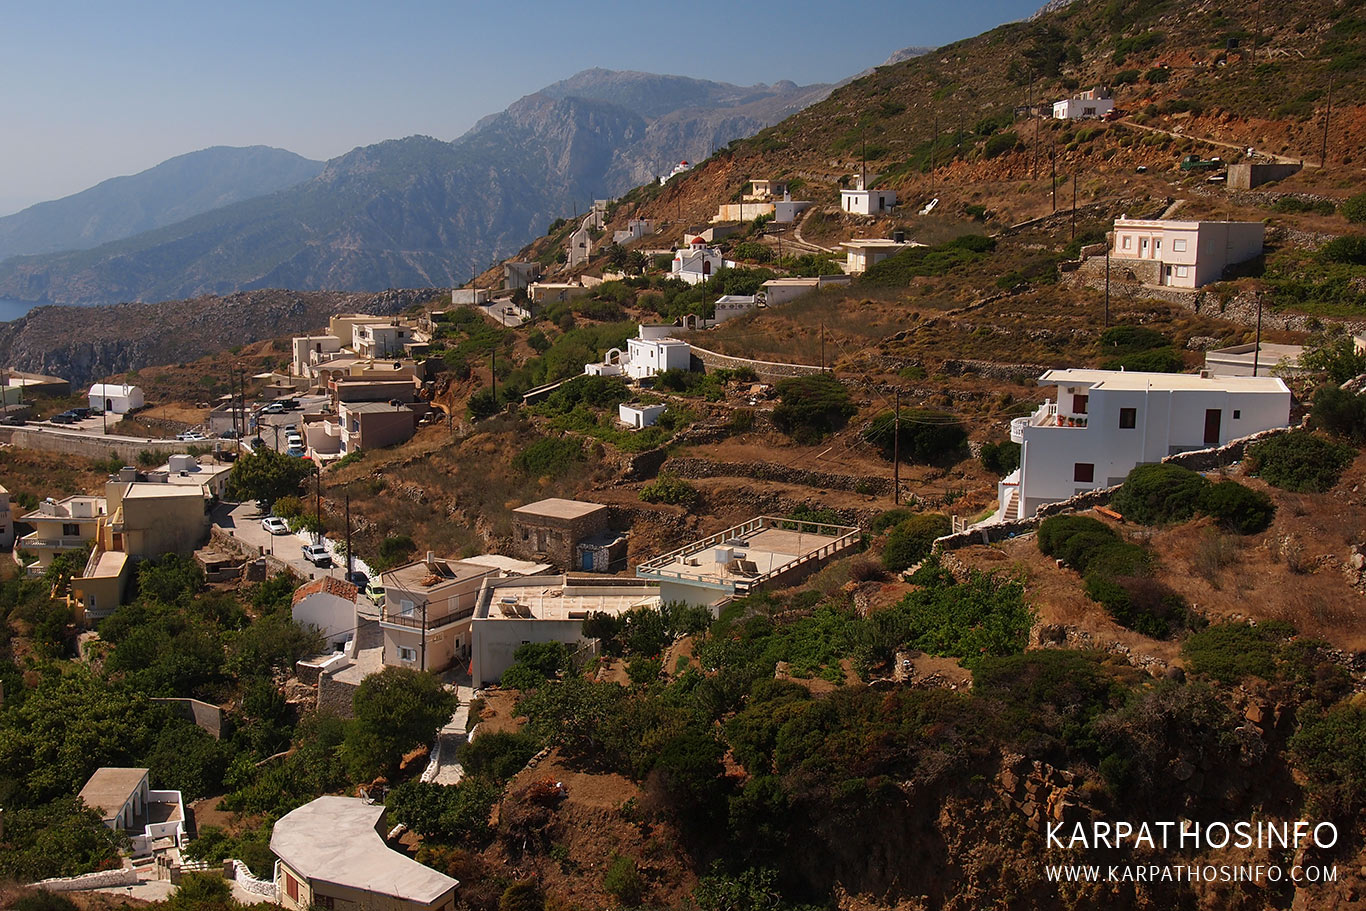 Spoa village in Karpathos